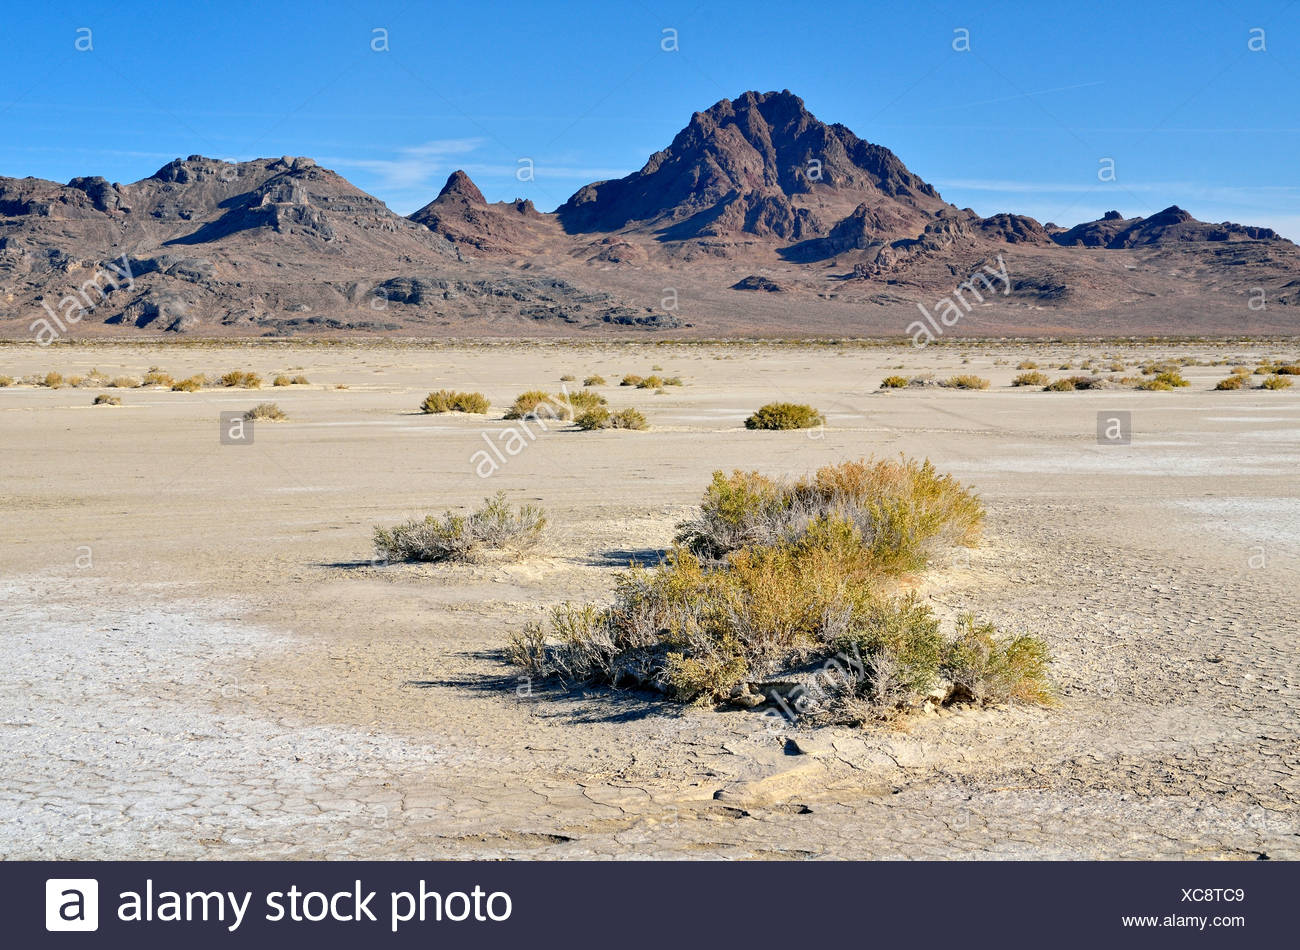 Salt flats at the Bonneville Speedway, Great Salt Lake Desert, Silver Island Mountains at back, Wendover, Utah, USA - Stock Image